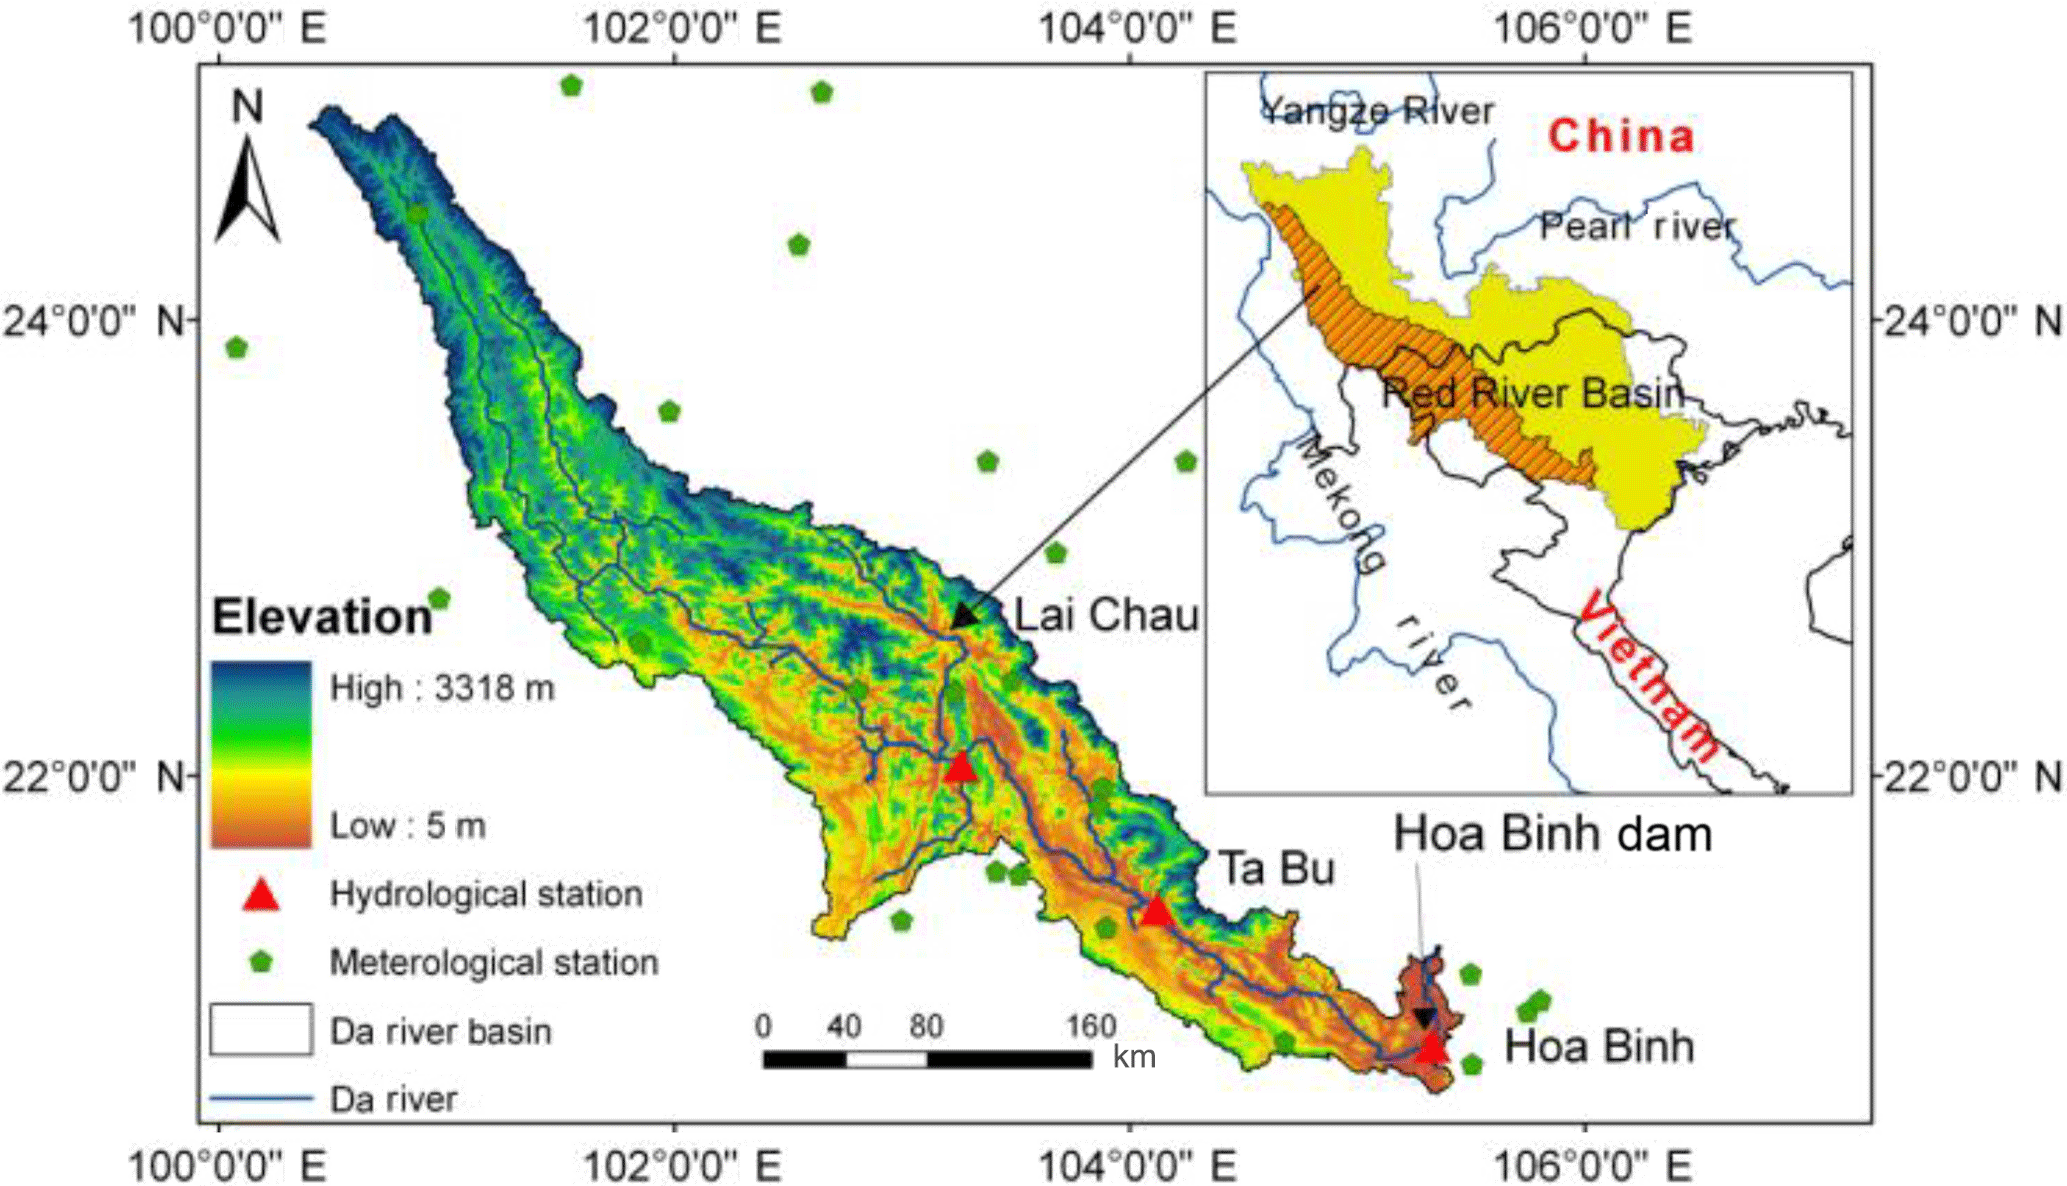 PIAHS - Predicting future land cover change and its impact